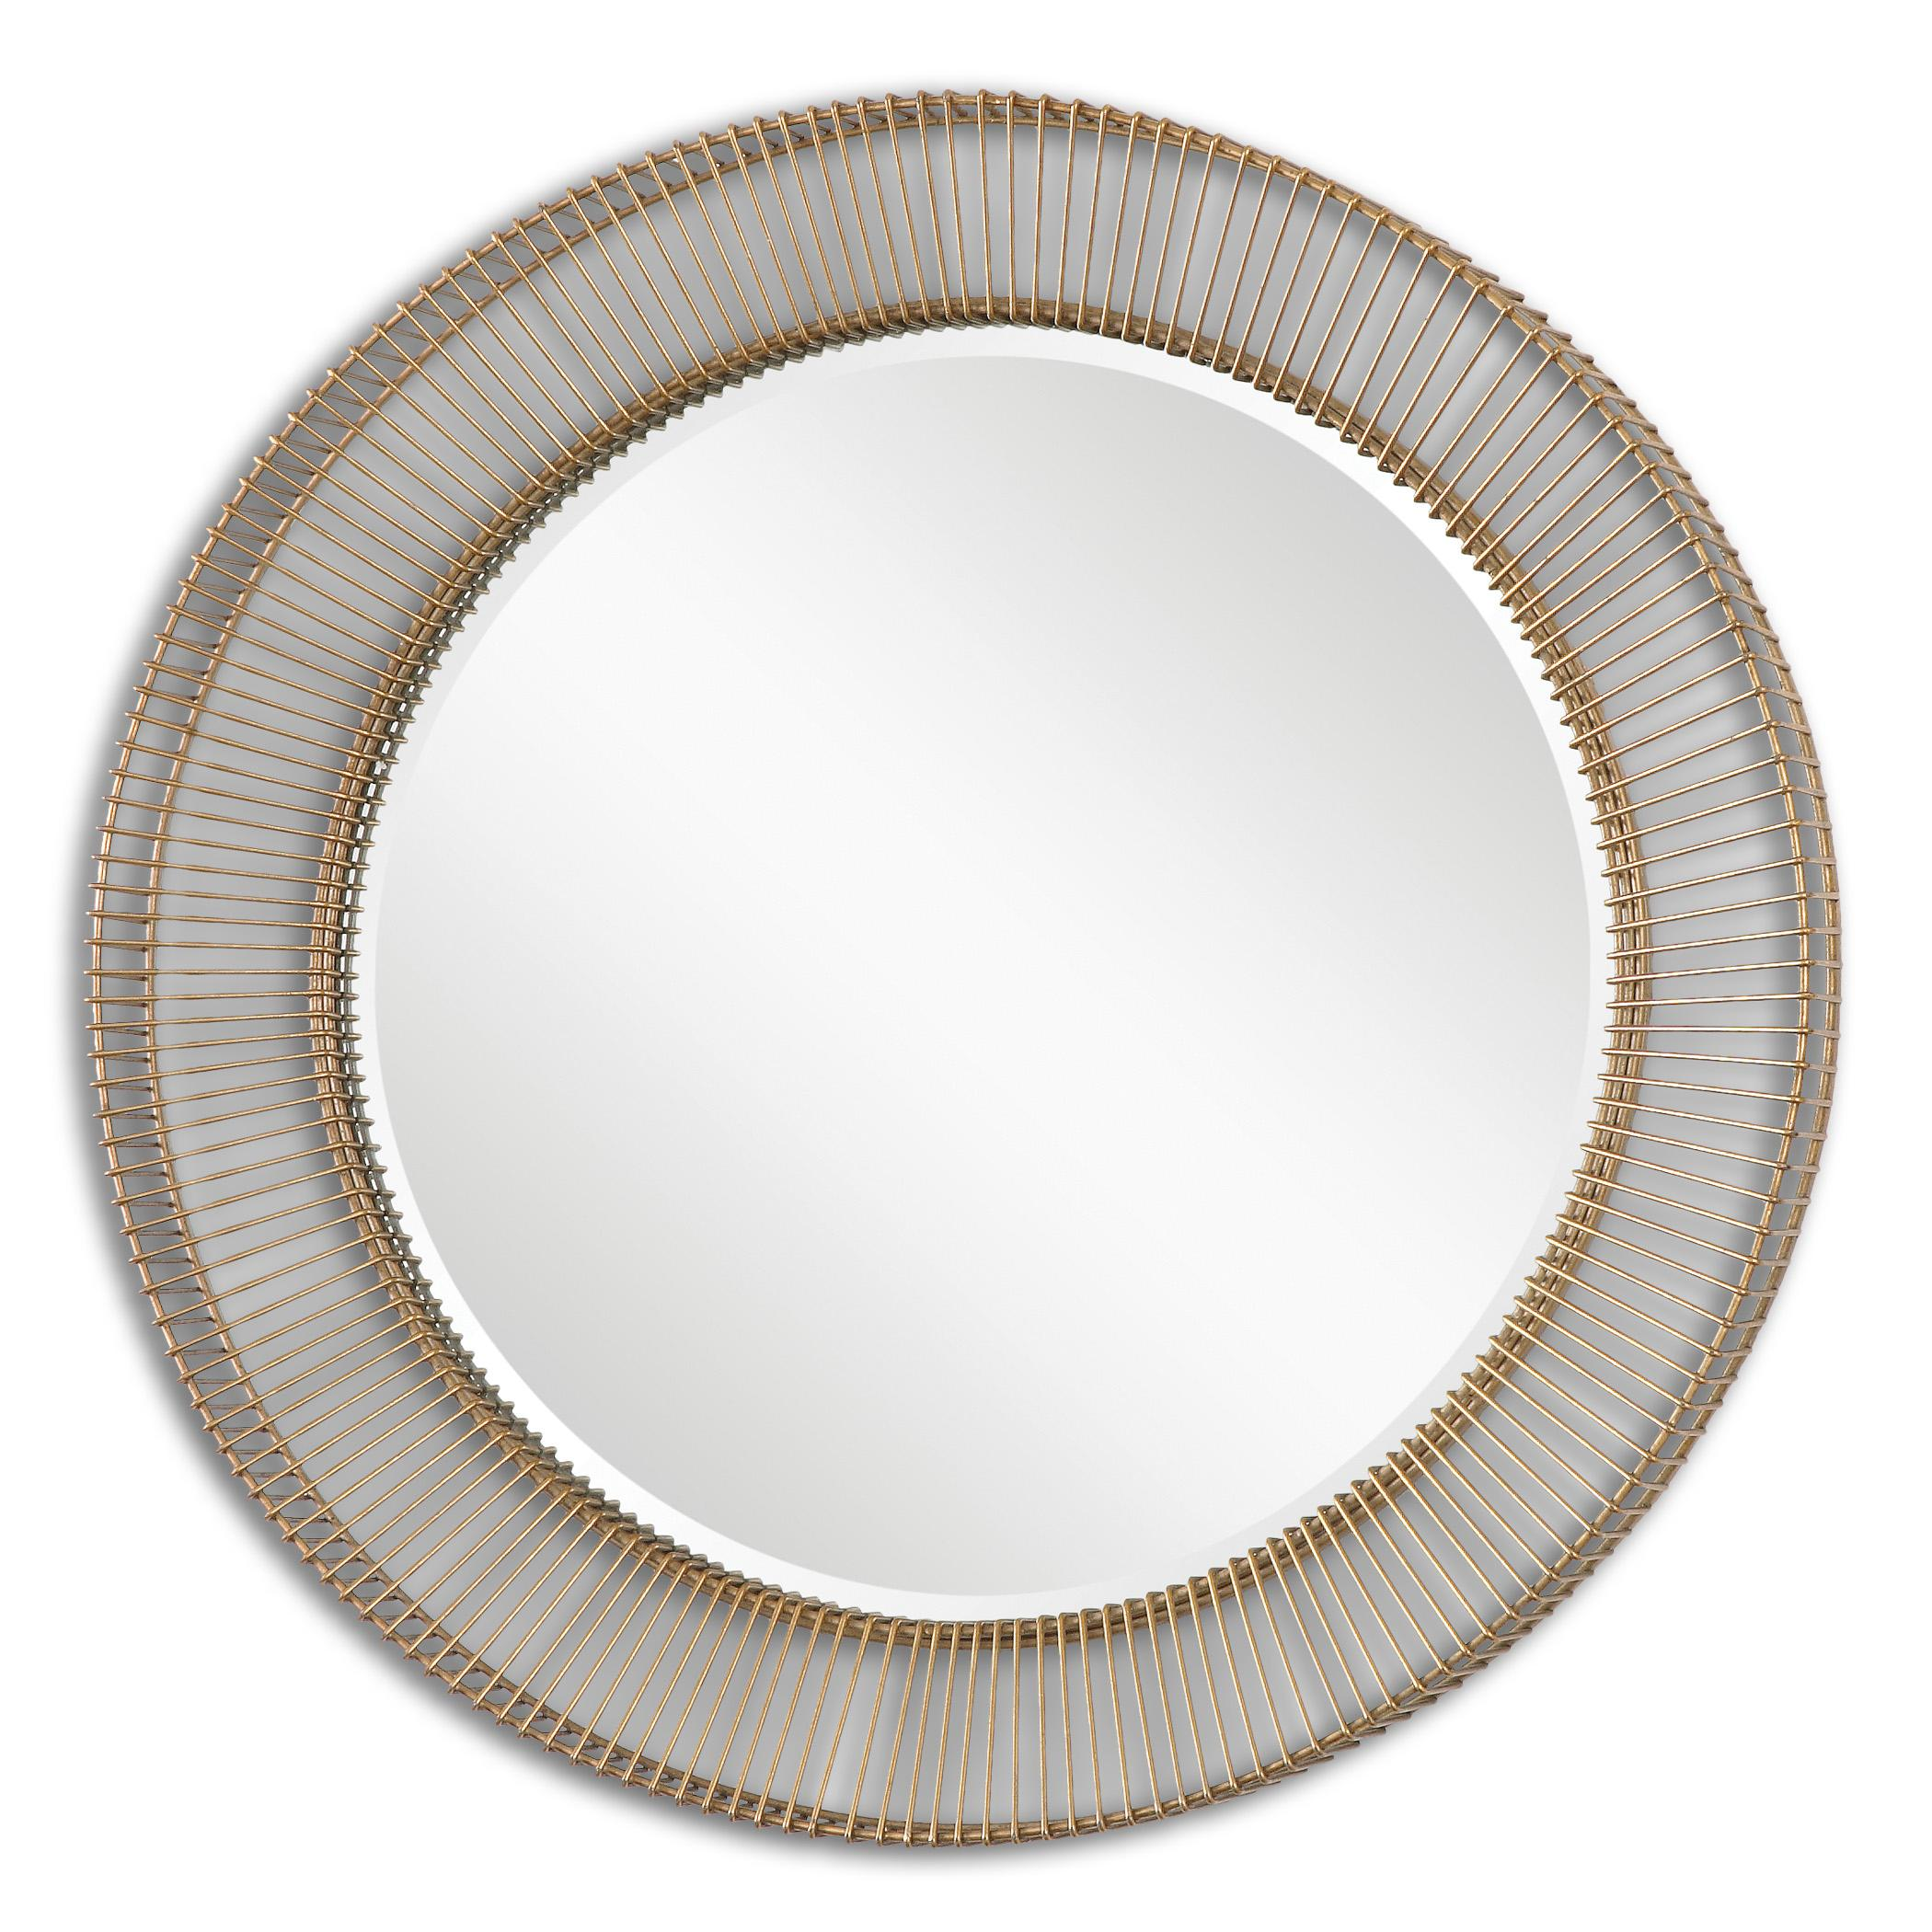 Uttermost Mirrors Bricius Round Metal Mirror - Item Number: 08125